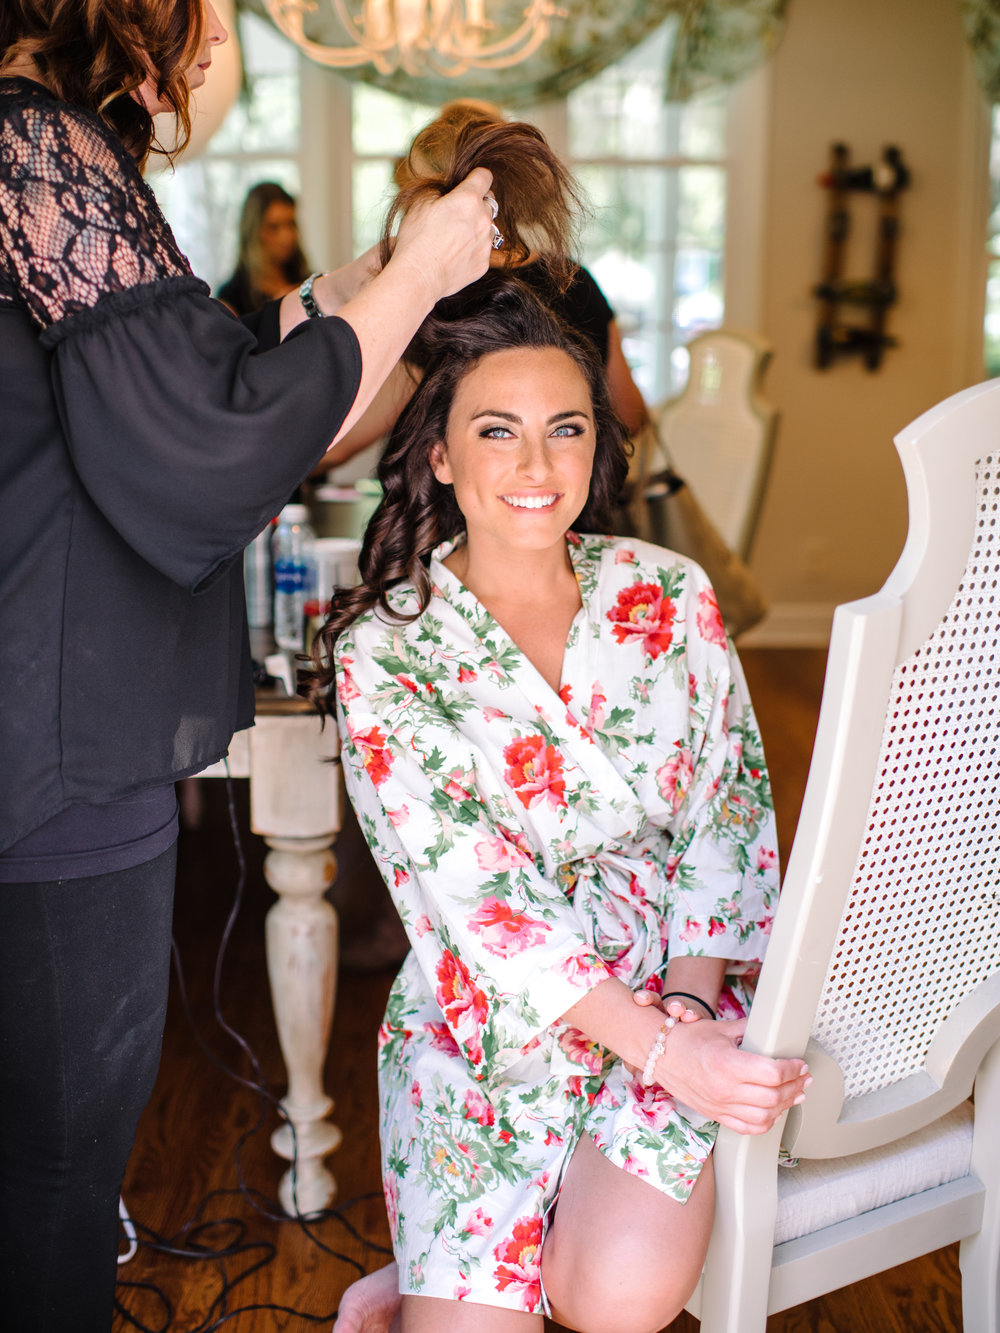 Myrtle Beach bride wearing floral robe for a wedding at Wachesaw Plantation